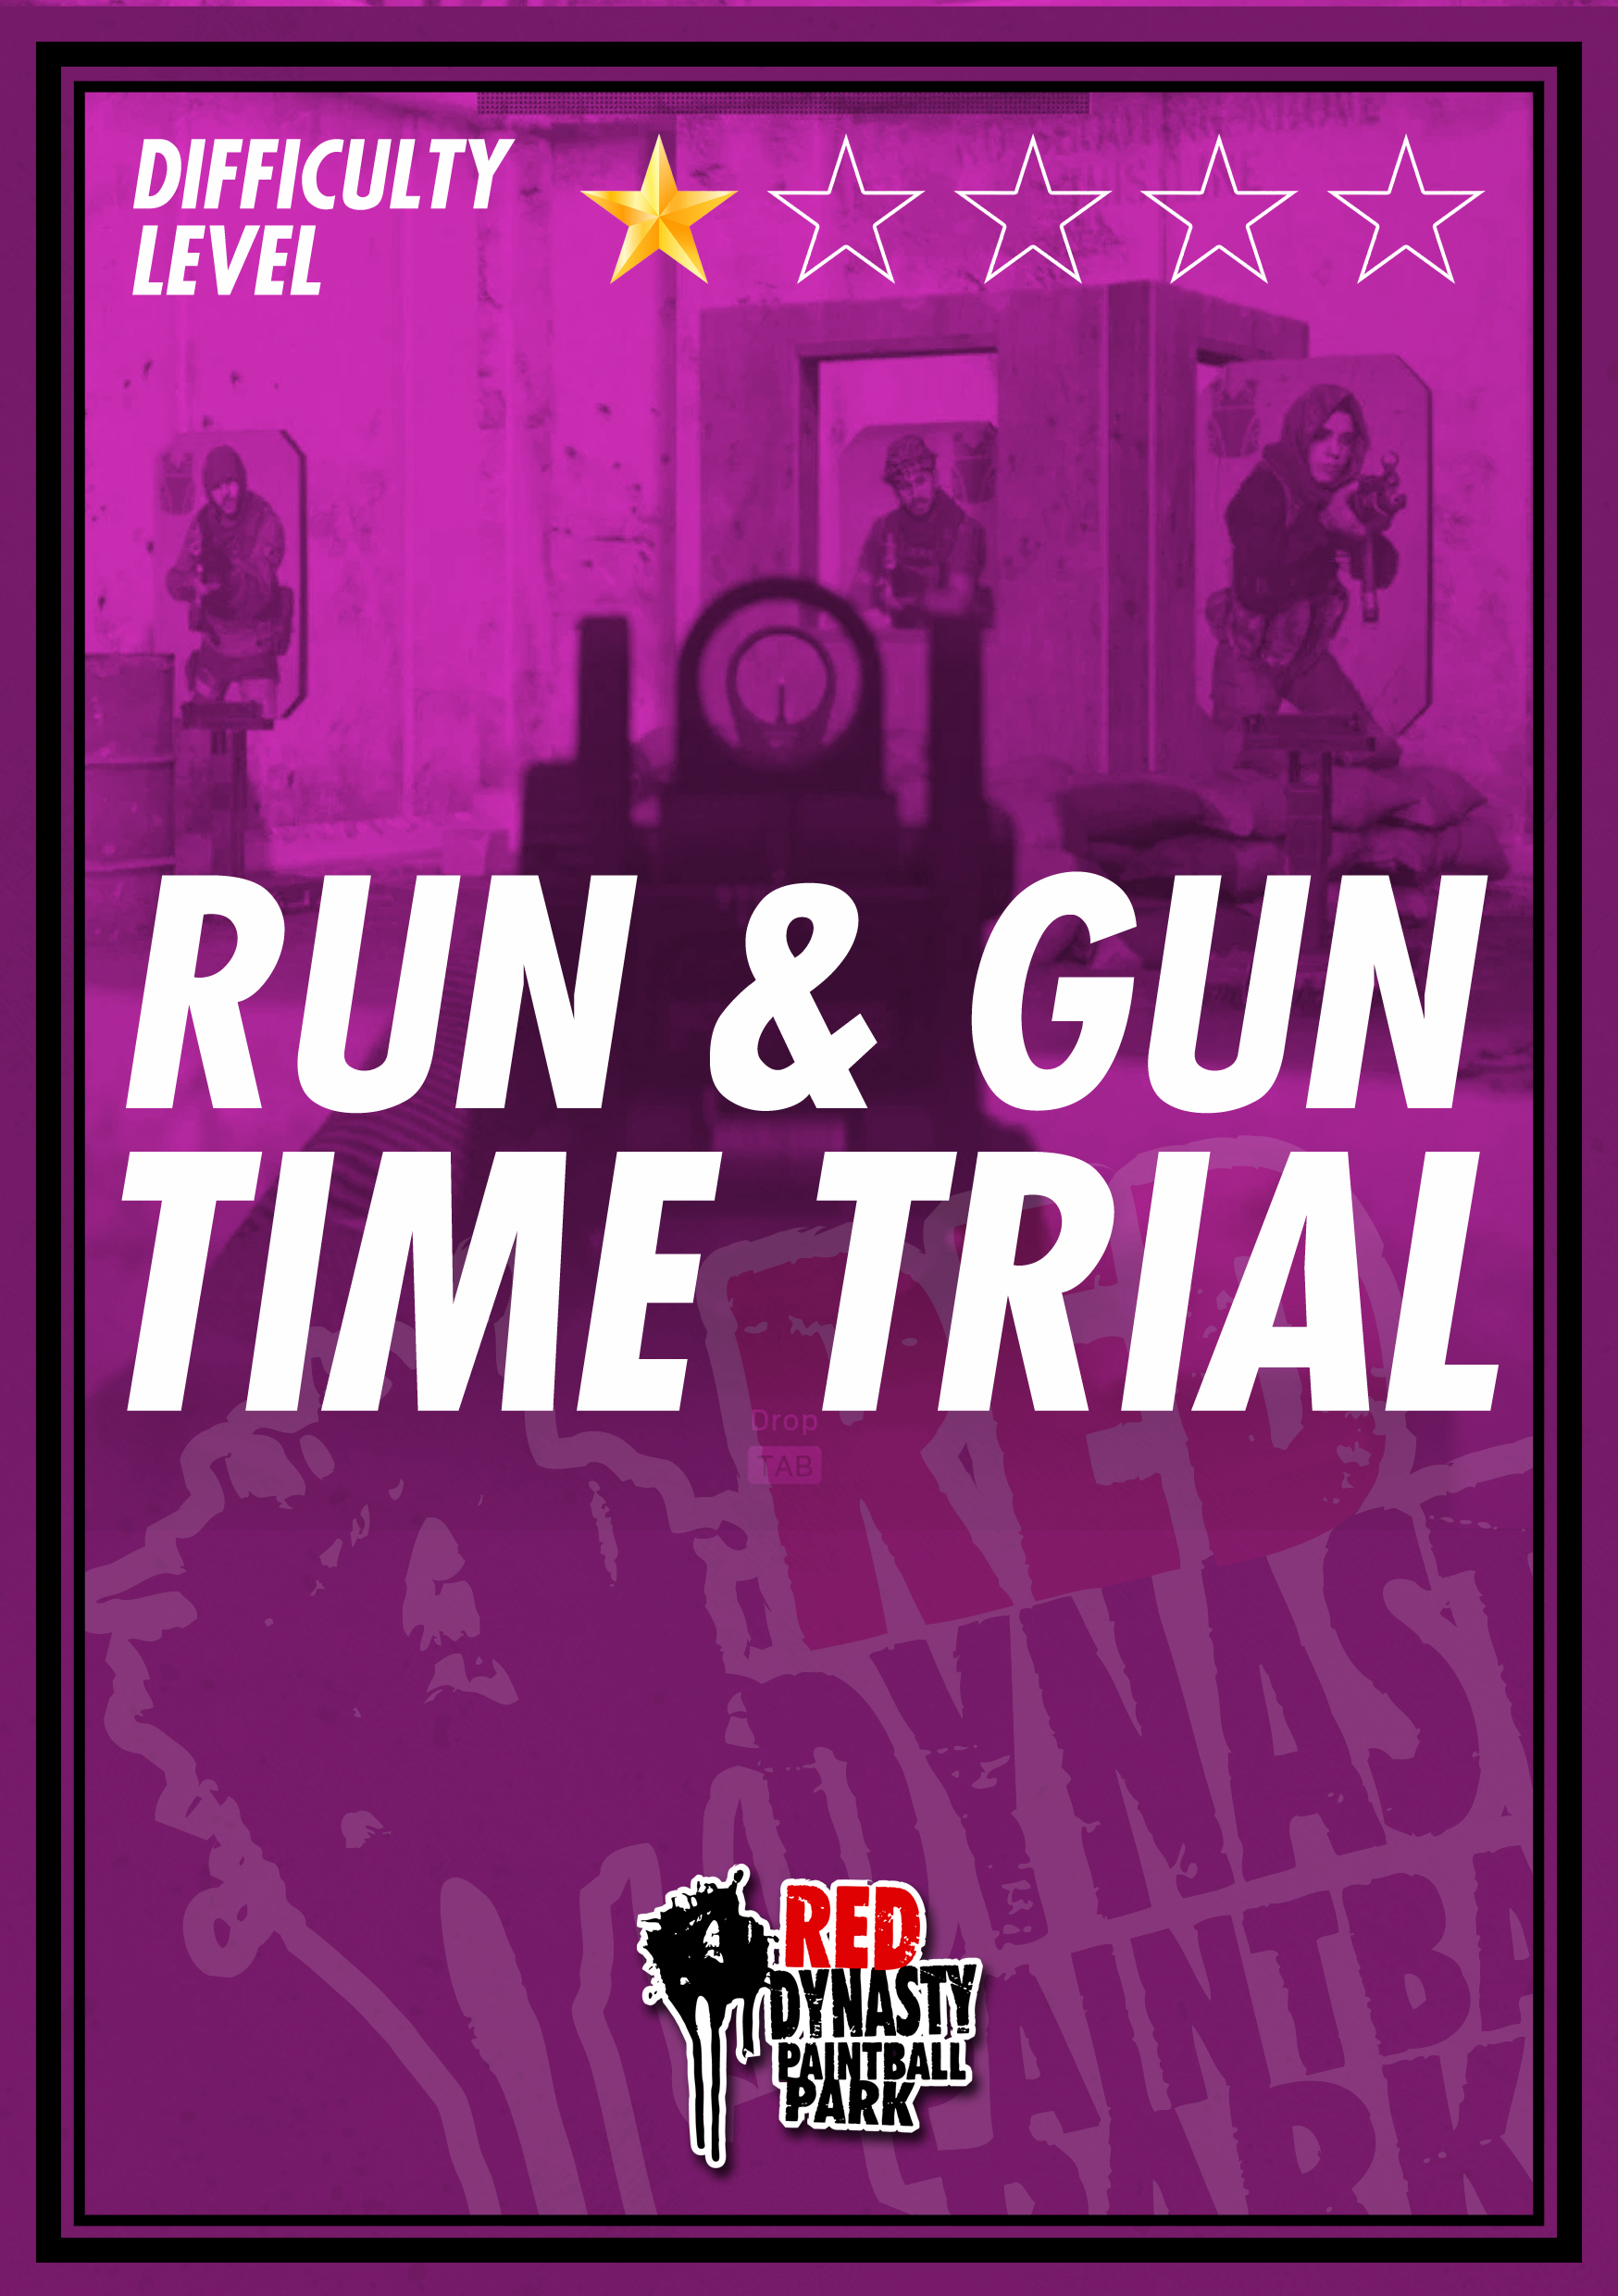 Hone your skills or compete to see who can finish the time trial the fastest. Multiple targets will be set up and a predefined route will be carved through the battlefield. Gun handling techniques will be tested. For example shooting from different positions, shooting with different hands, accuracy, agility, reflexes and more.